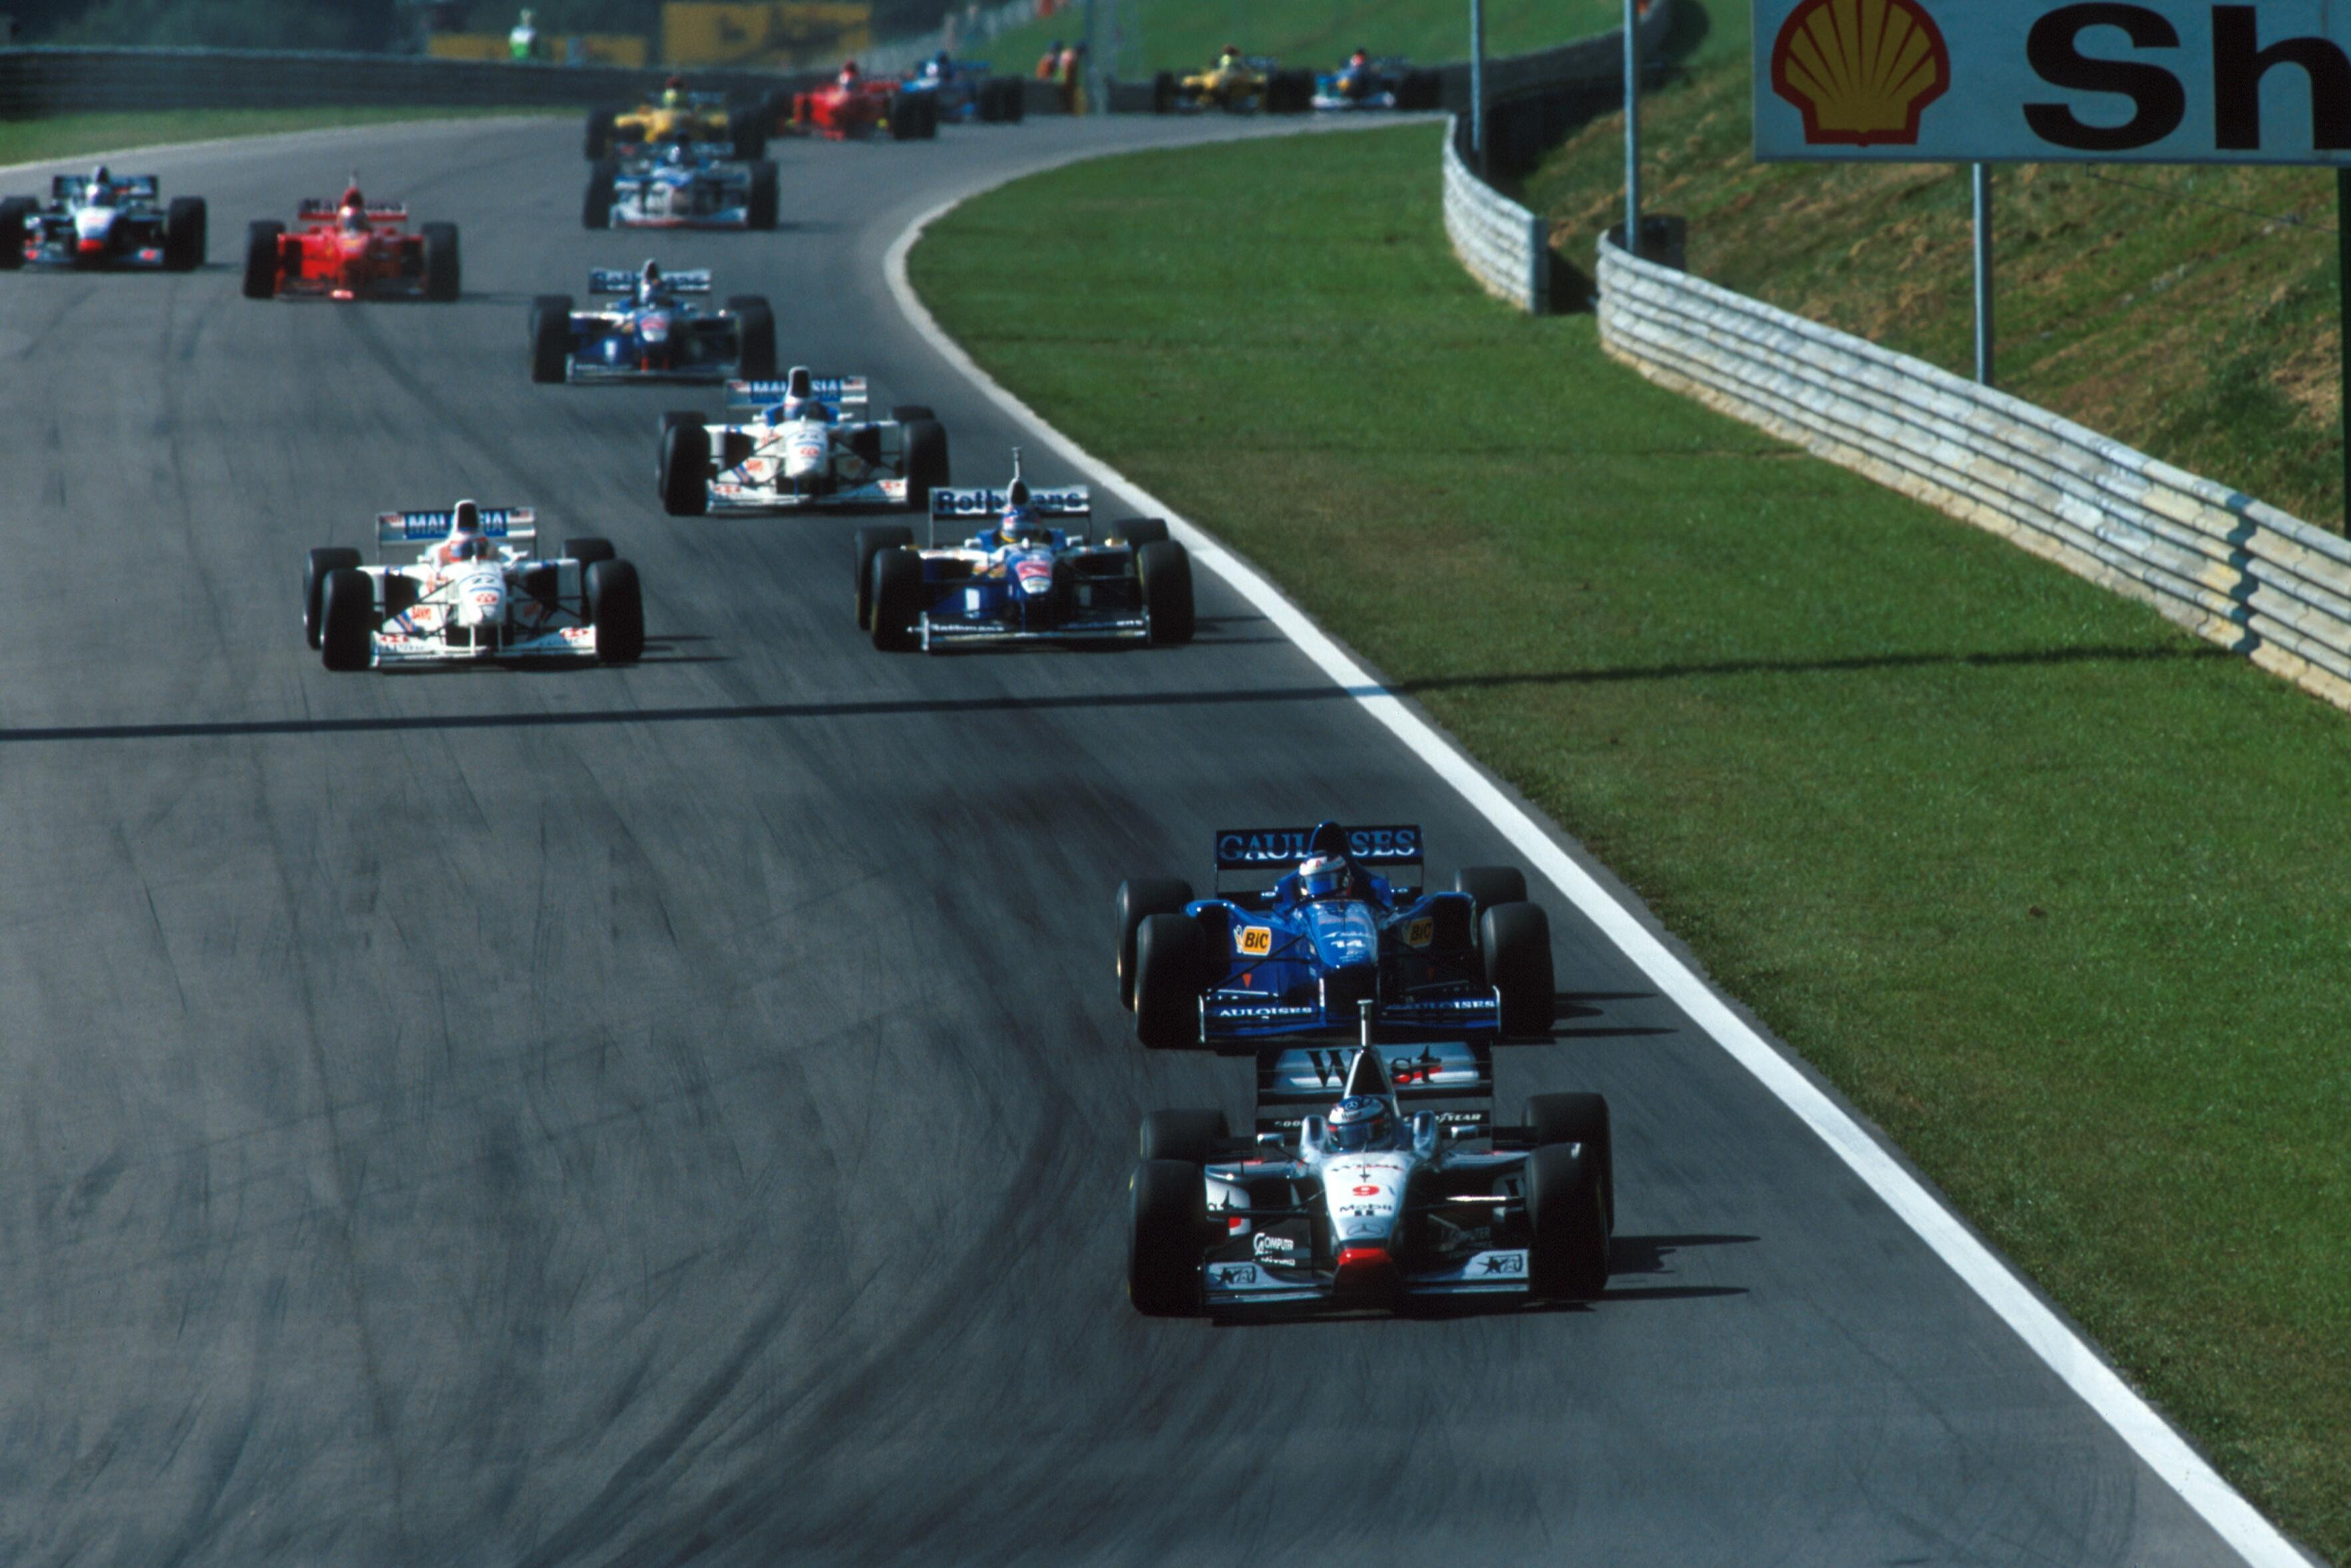 When Hakkinen retired on the opening lap, Trulli led the first 37 laps of F1's return to Austria before retiring from second